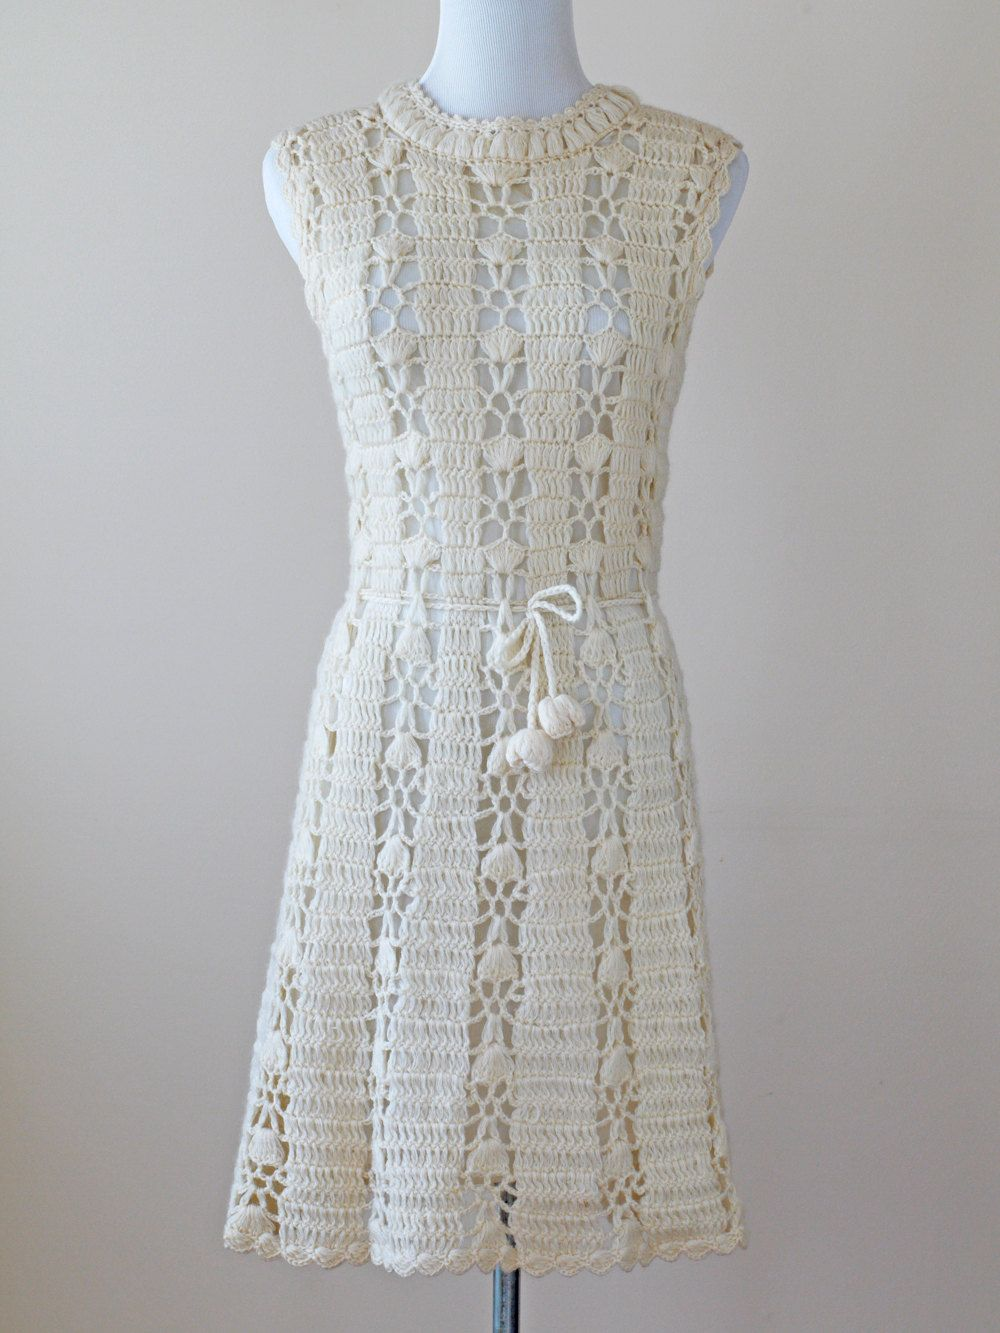 1960s Crochet Dress / 60s Knit Dress // Bohemian Rhapsody